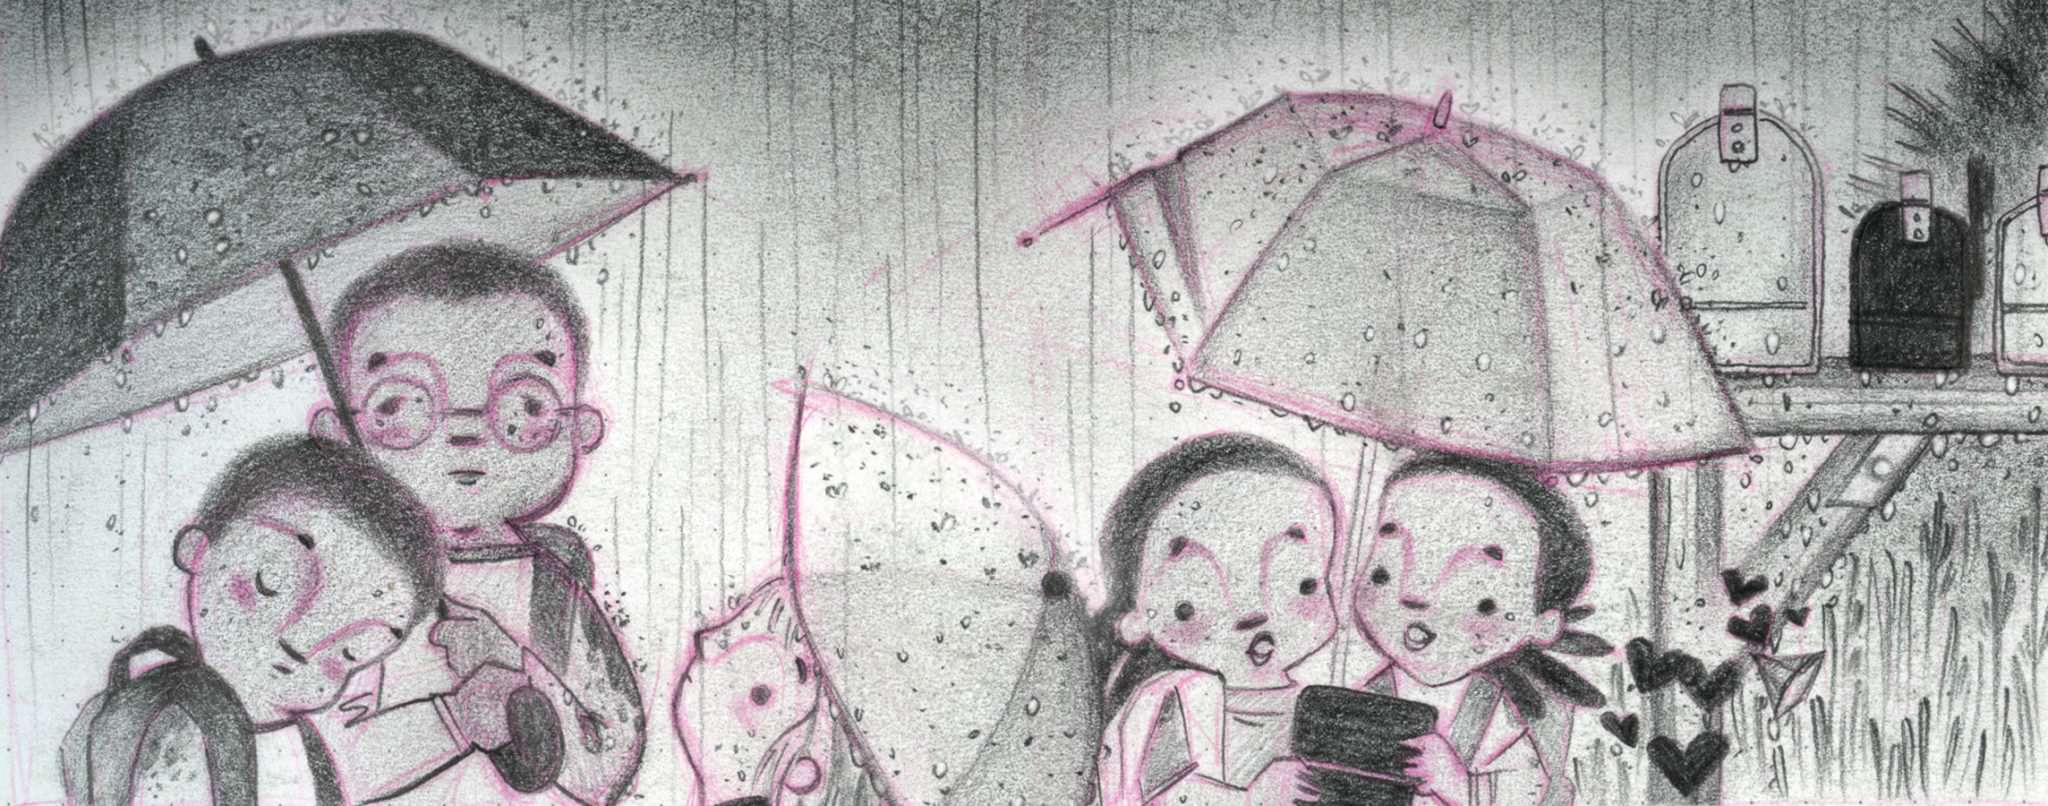 Illustration: a number of children wait next to mailboxes under umbrellas during a downpour.